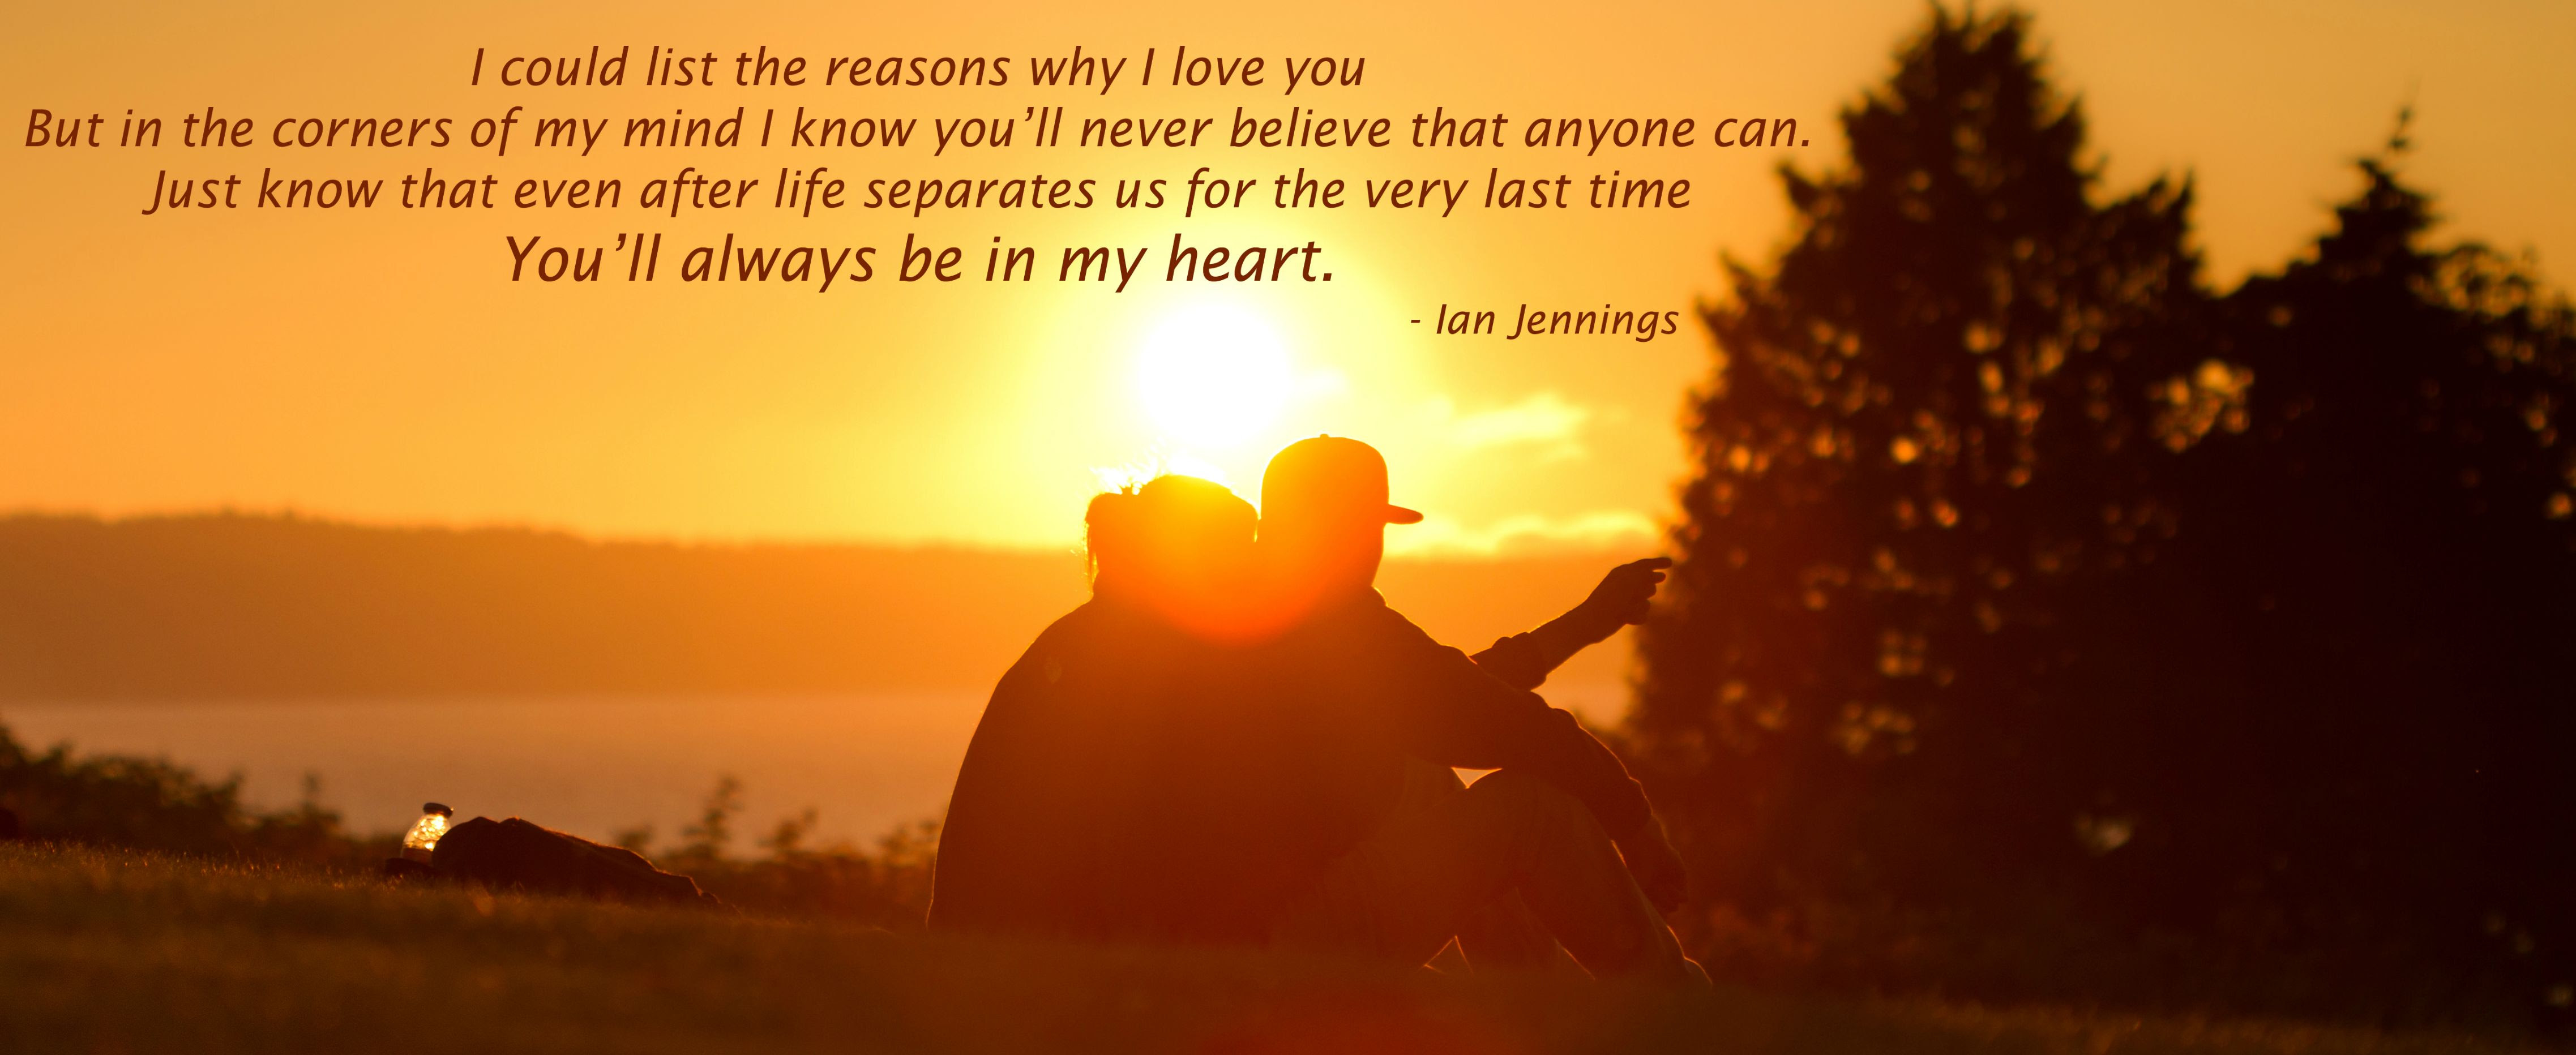 I Could List The Reasons Why I Love You Ian Jennings